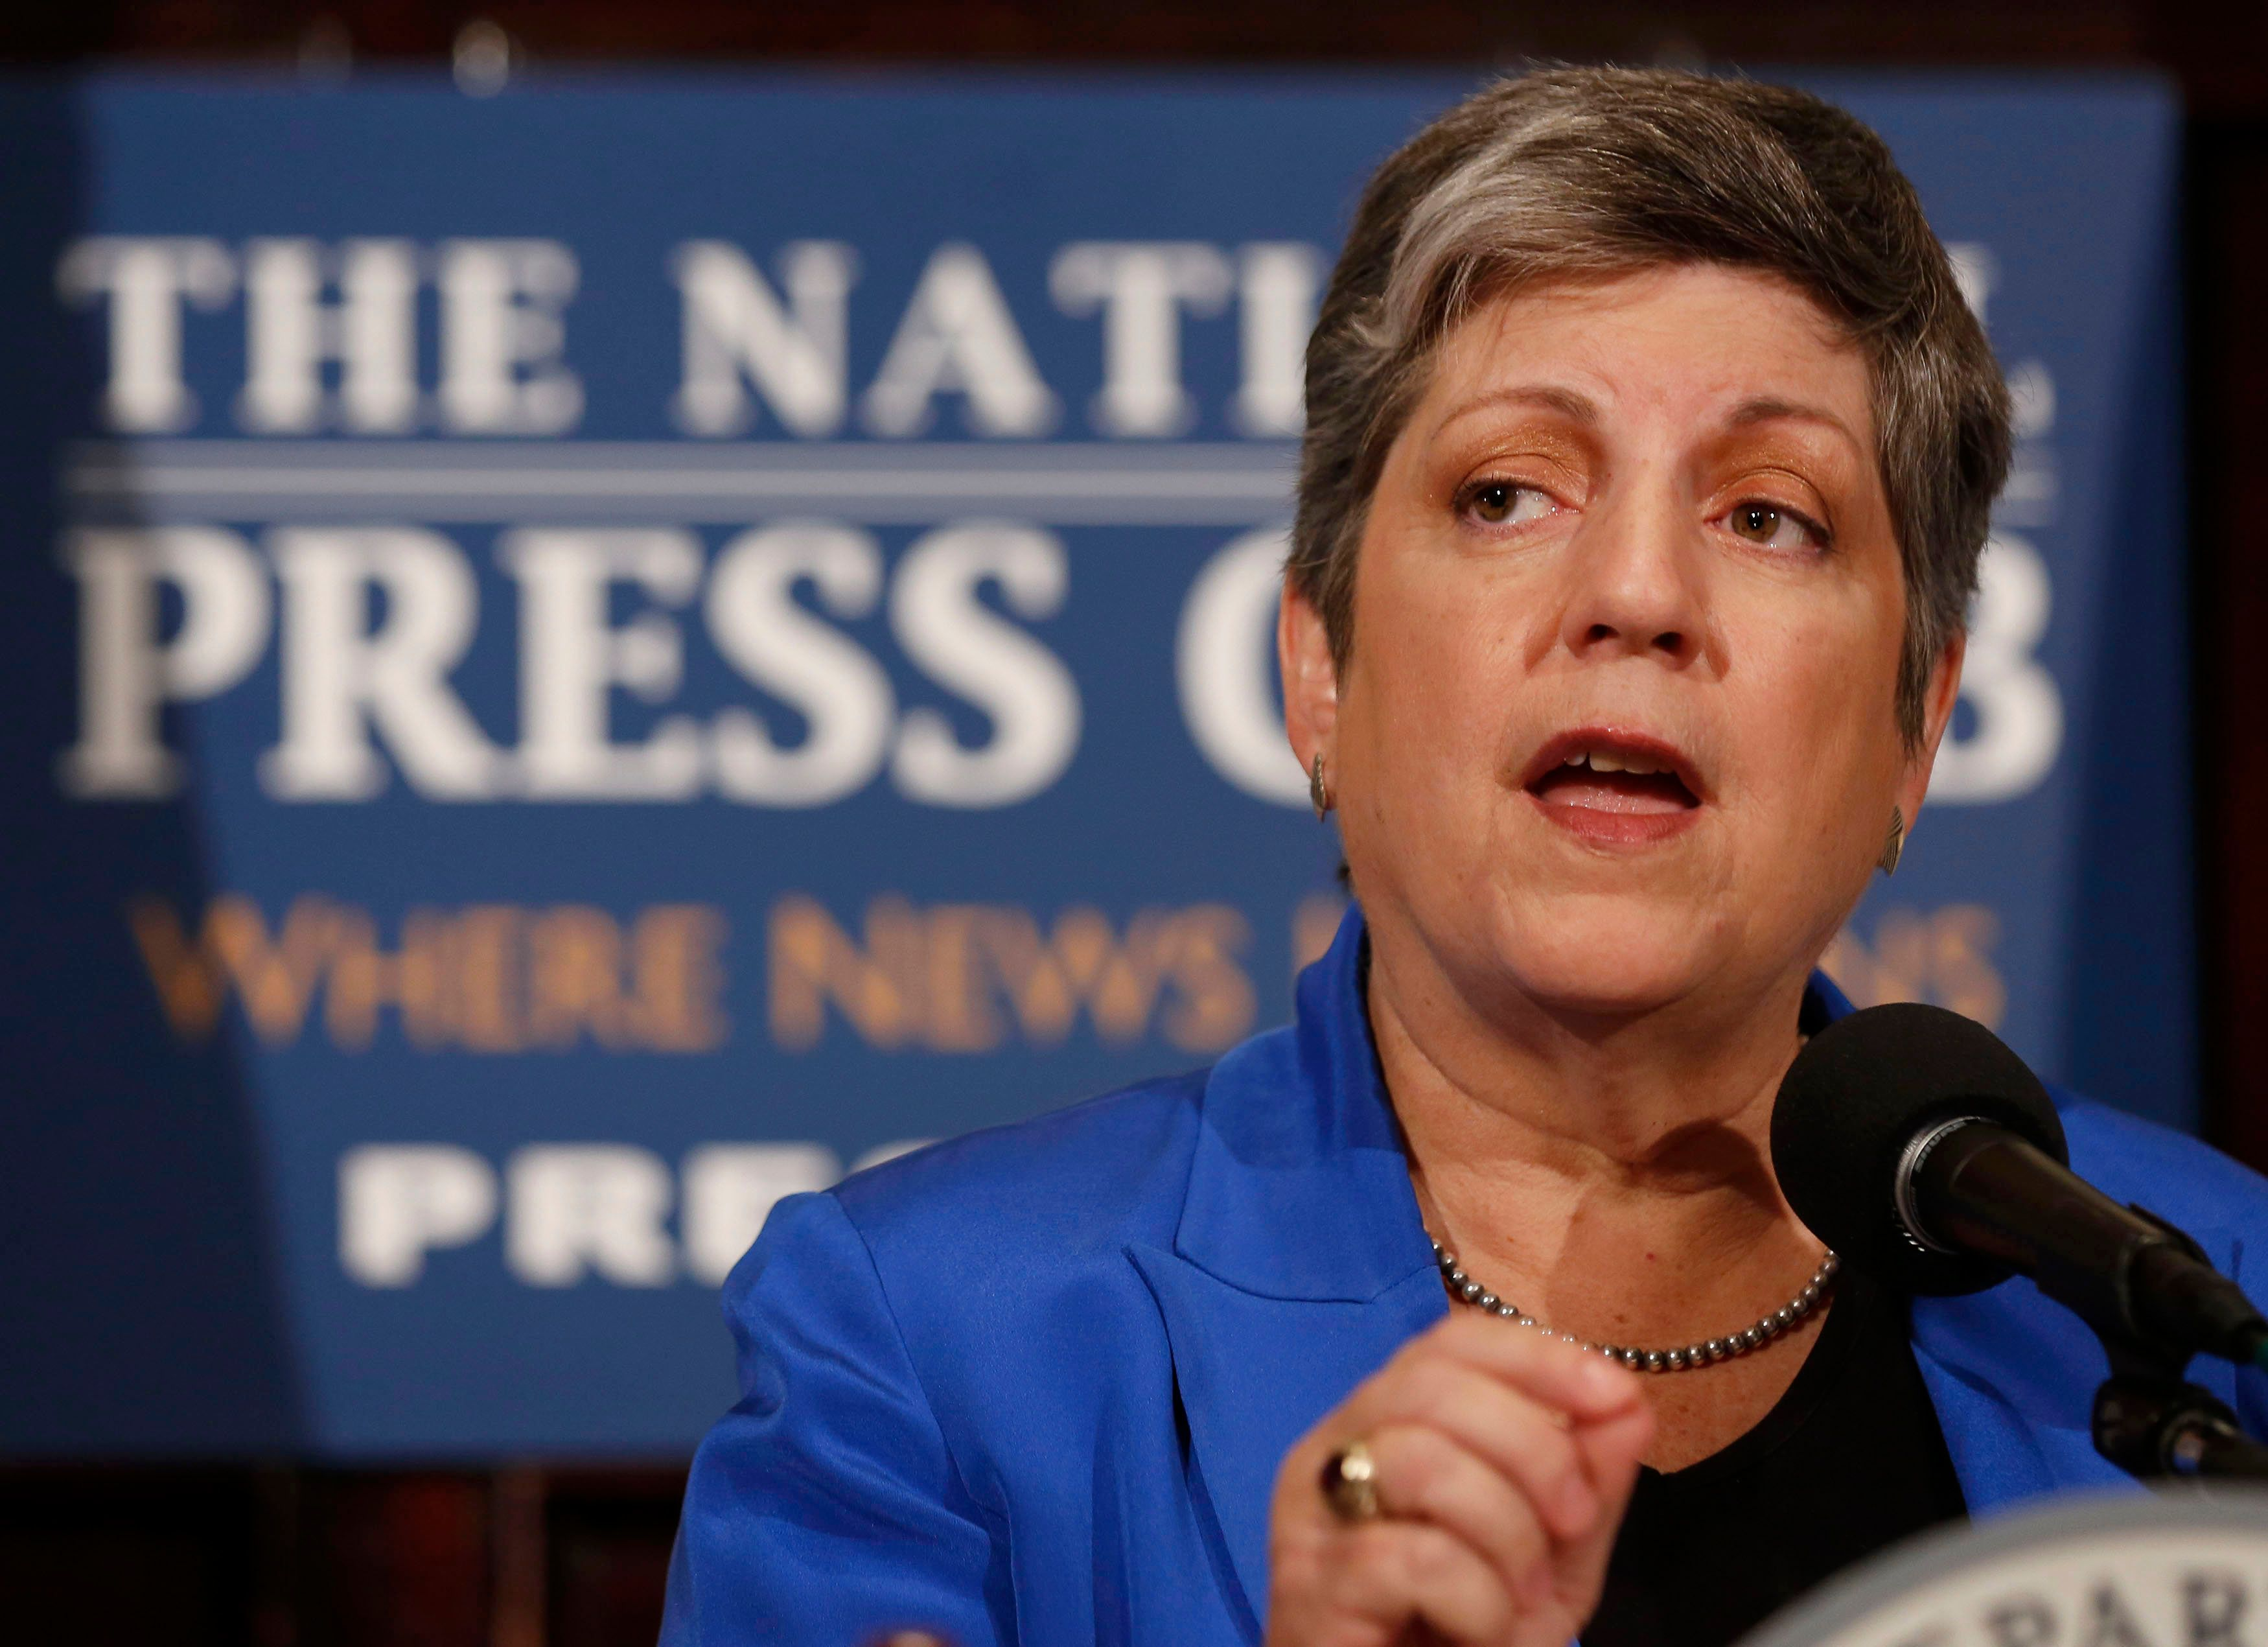 Former Secretary of Homeland Security Janet Napolitano gives her final speech in that office at the National Press Club in Wa